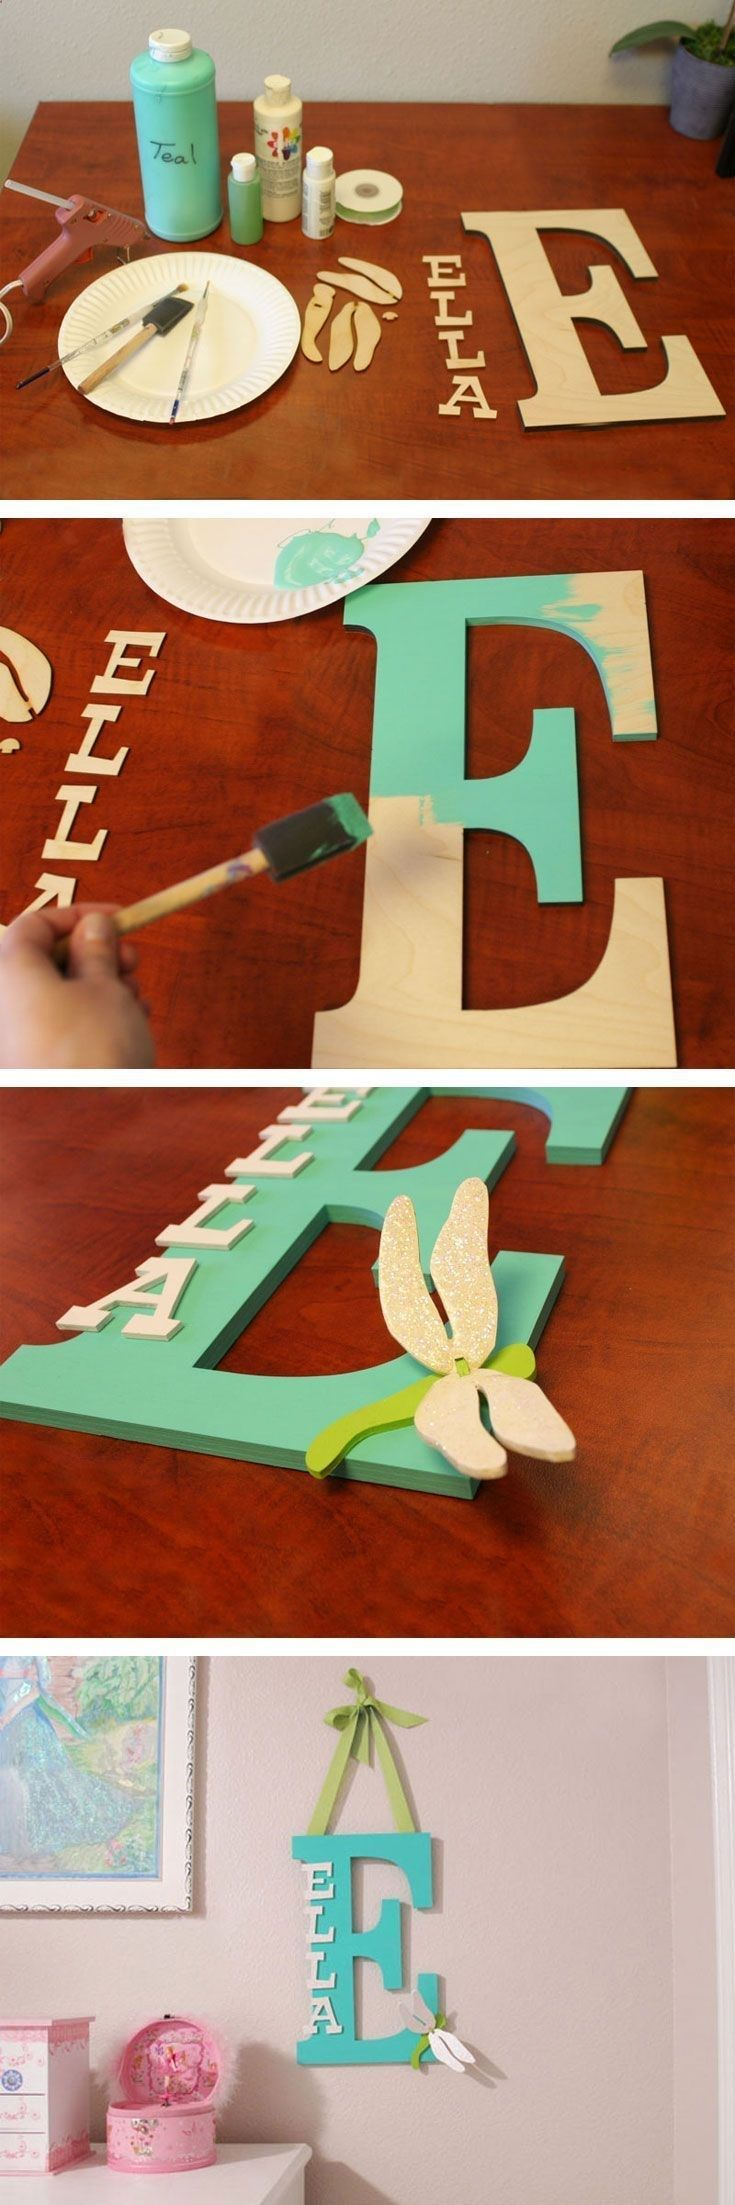 4065906725812481063564 This would be cute to do with our last name for a front door decoration